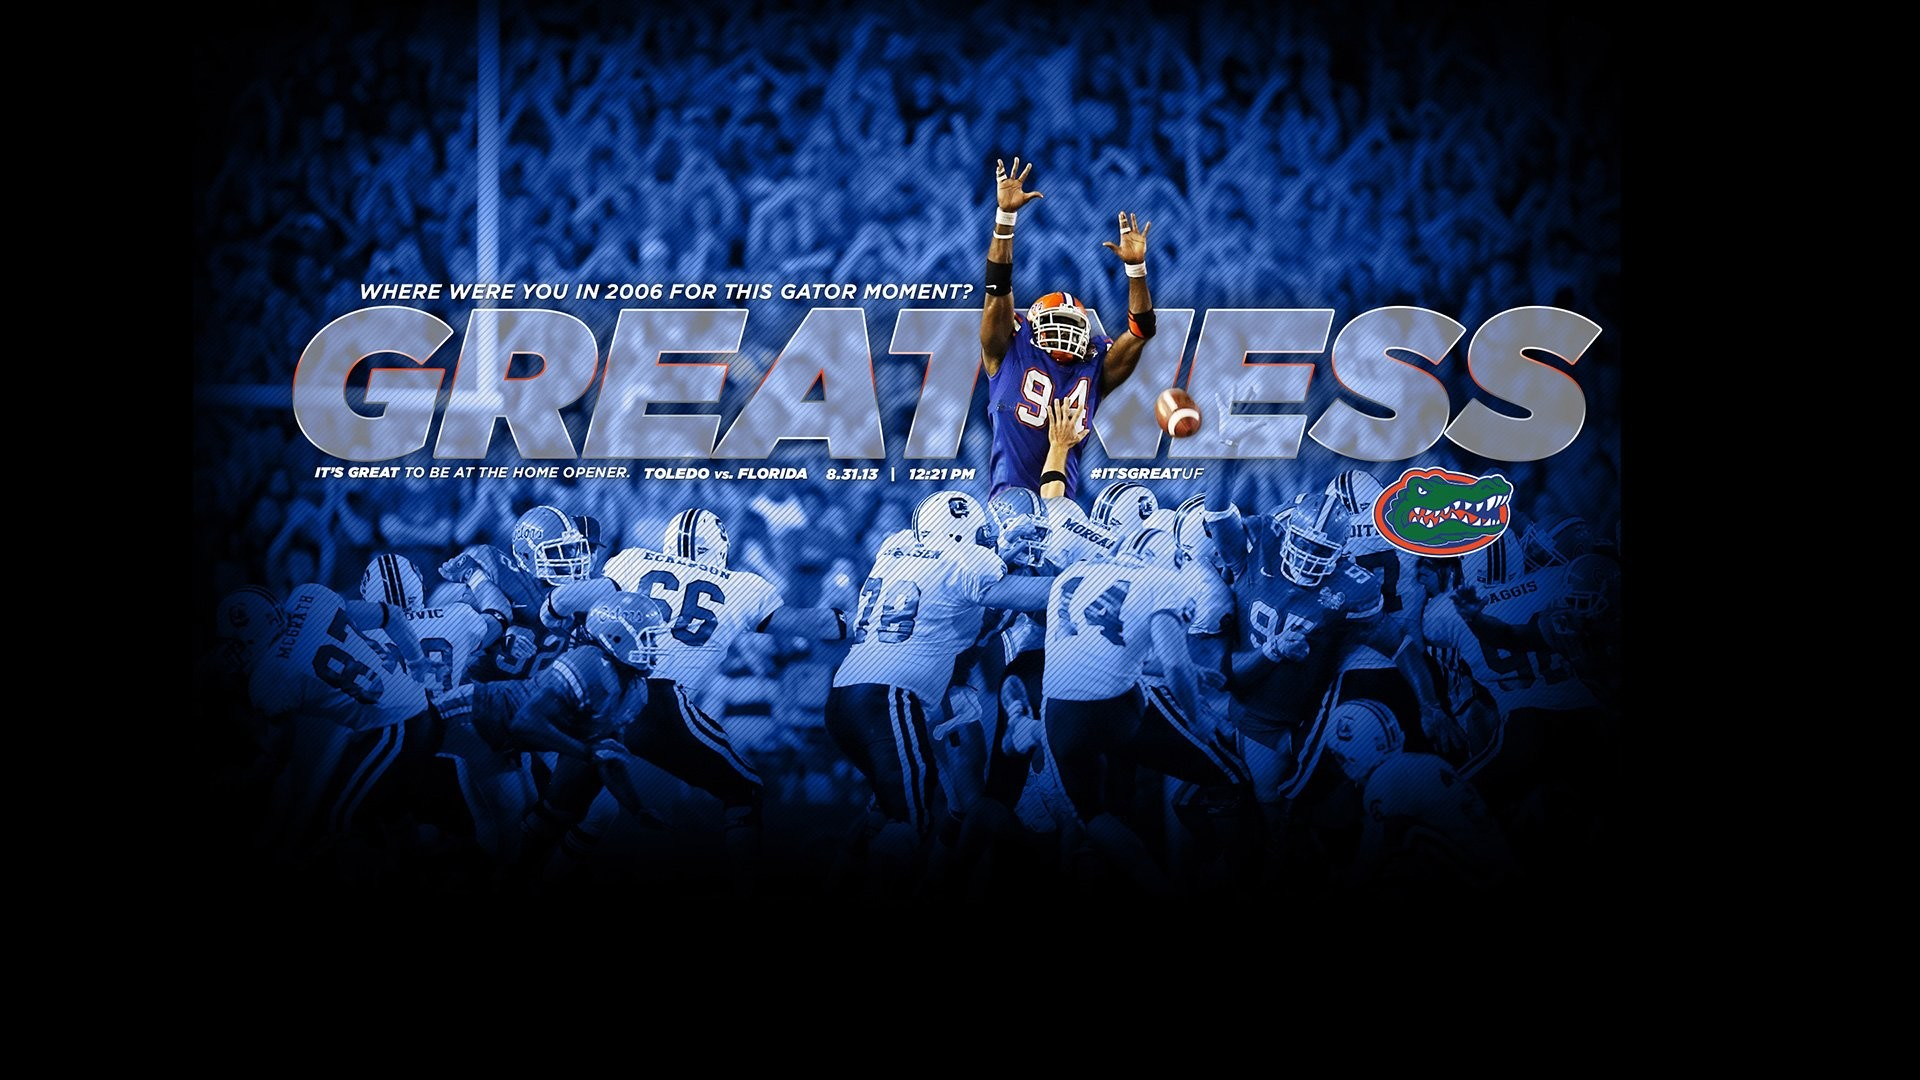 FLORIDA GATORS college football wallpaper background by wallpaperup .